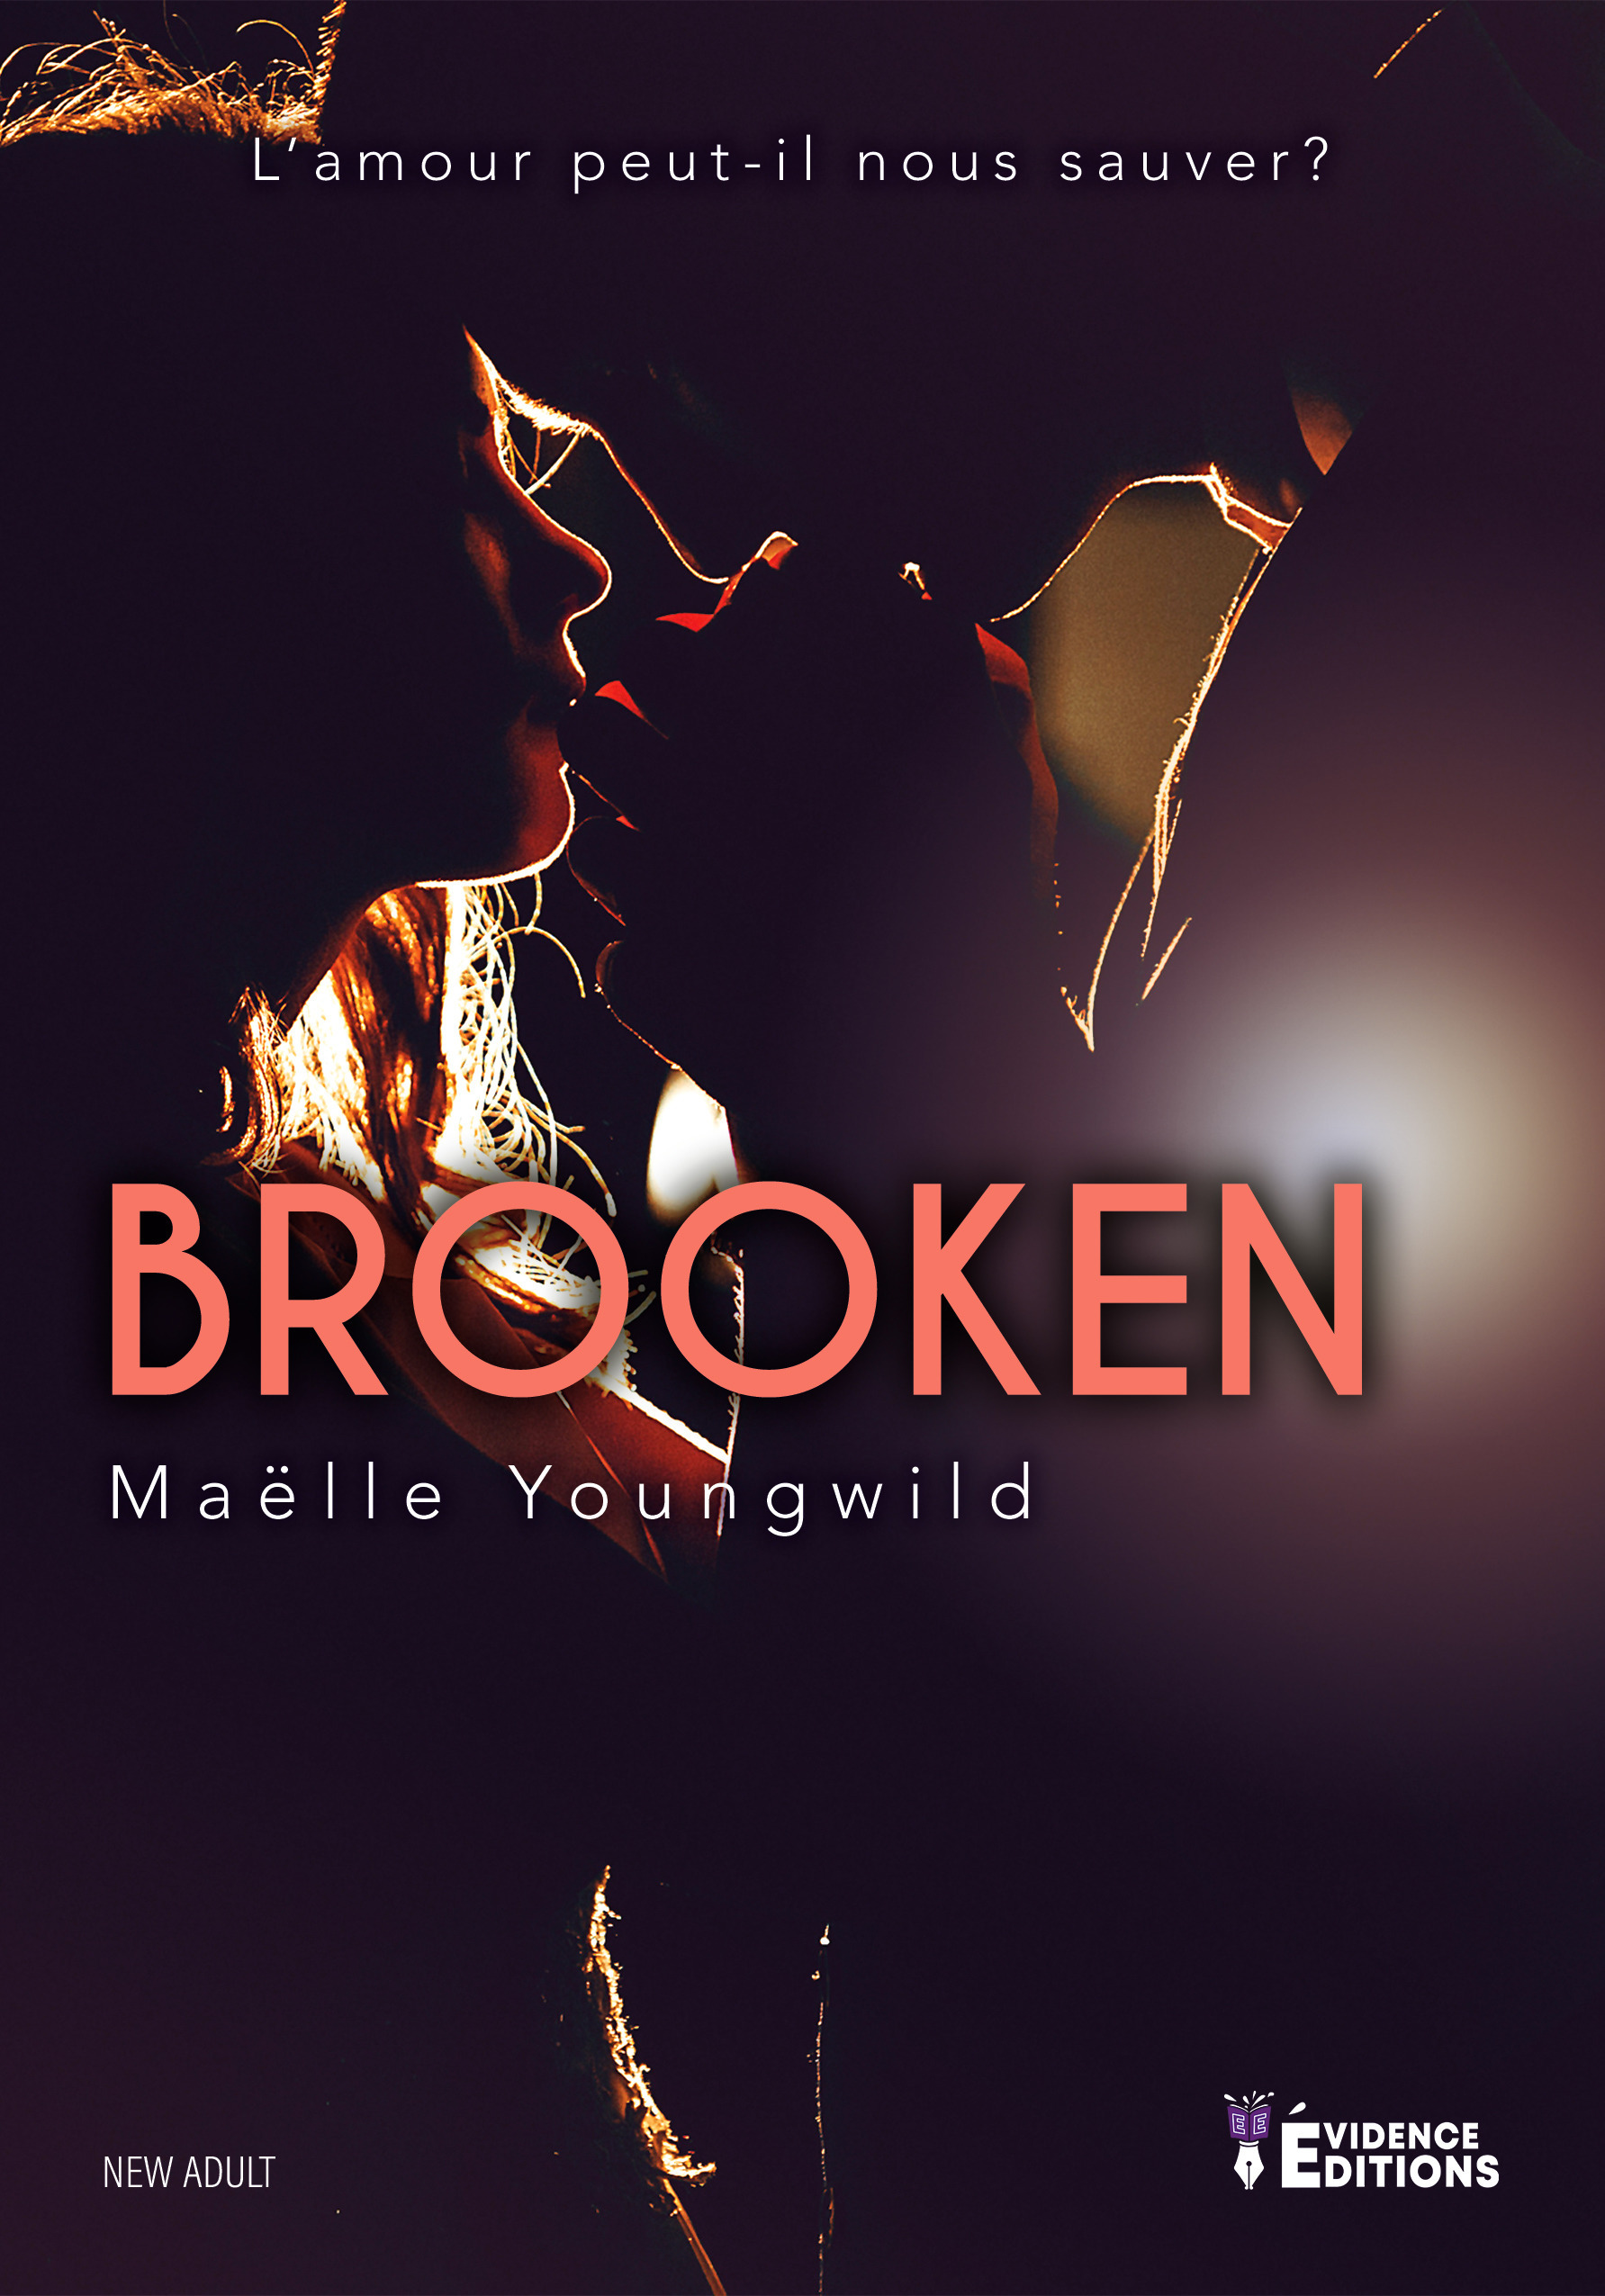 Maëlle Youngwild Brooken